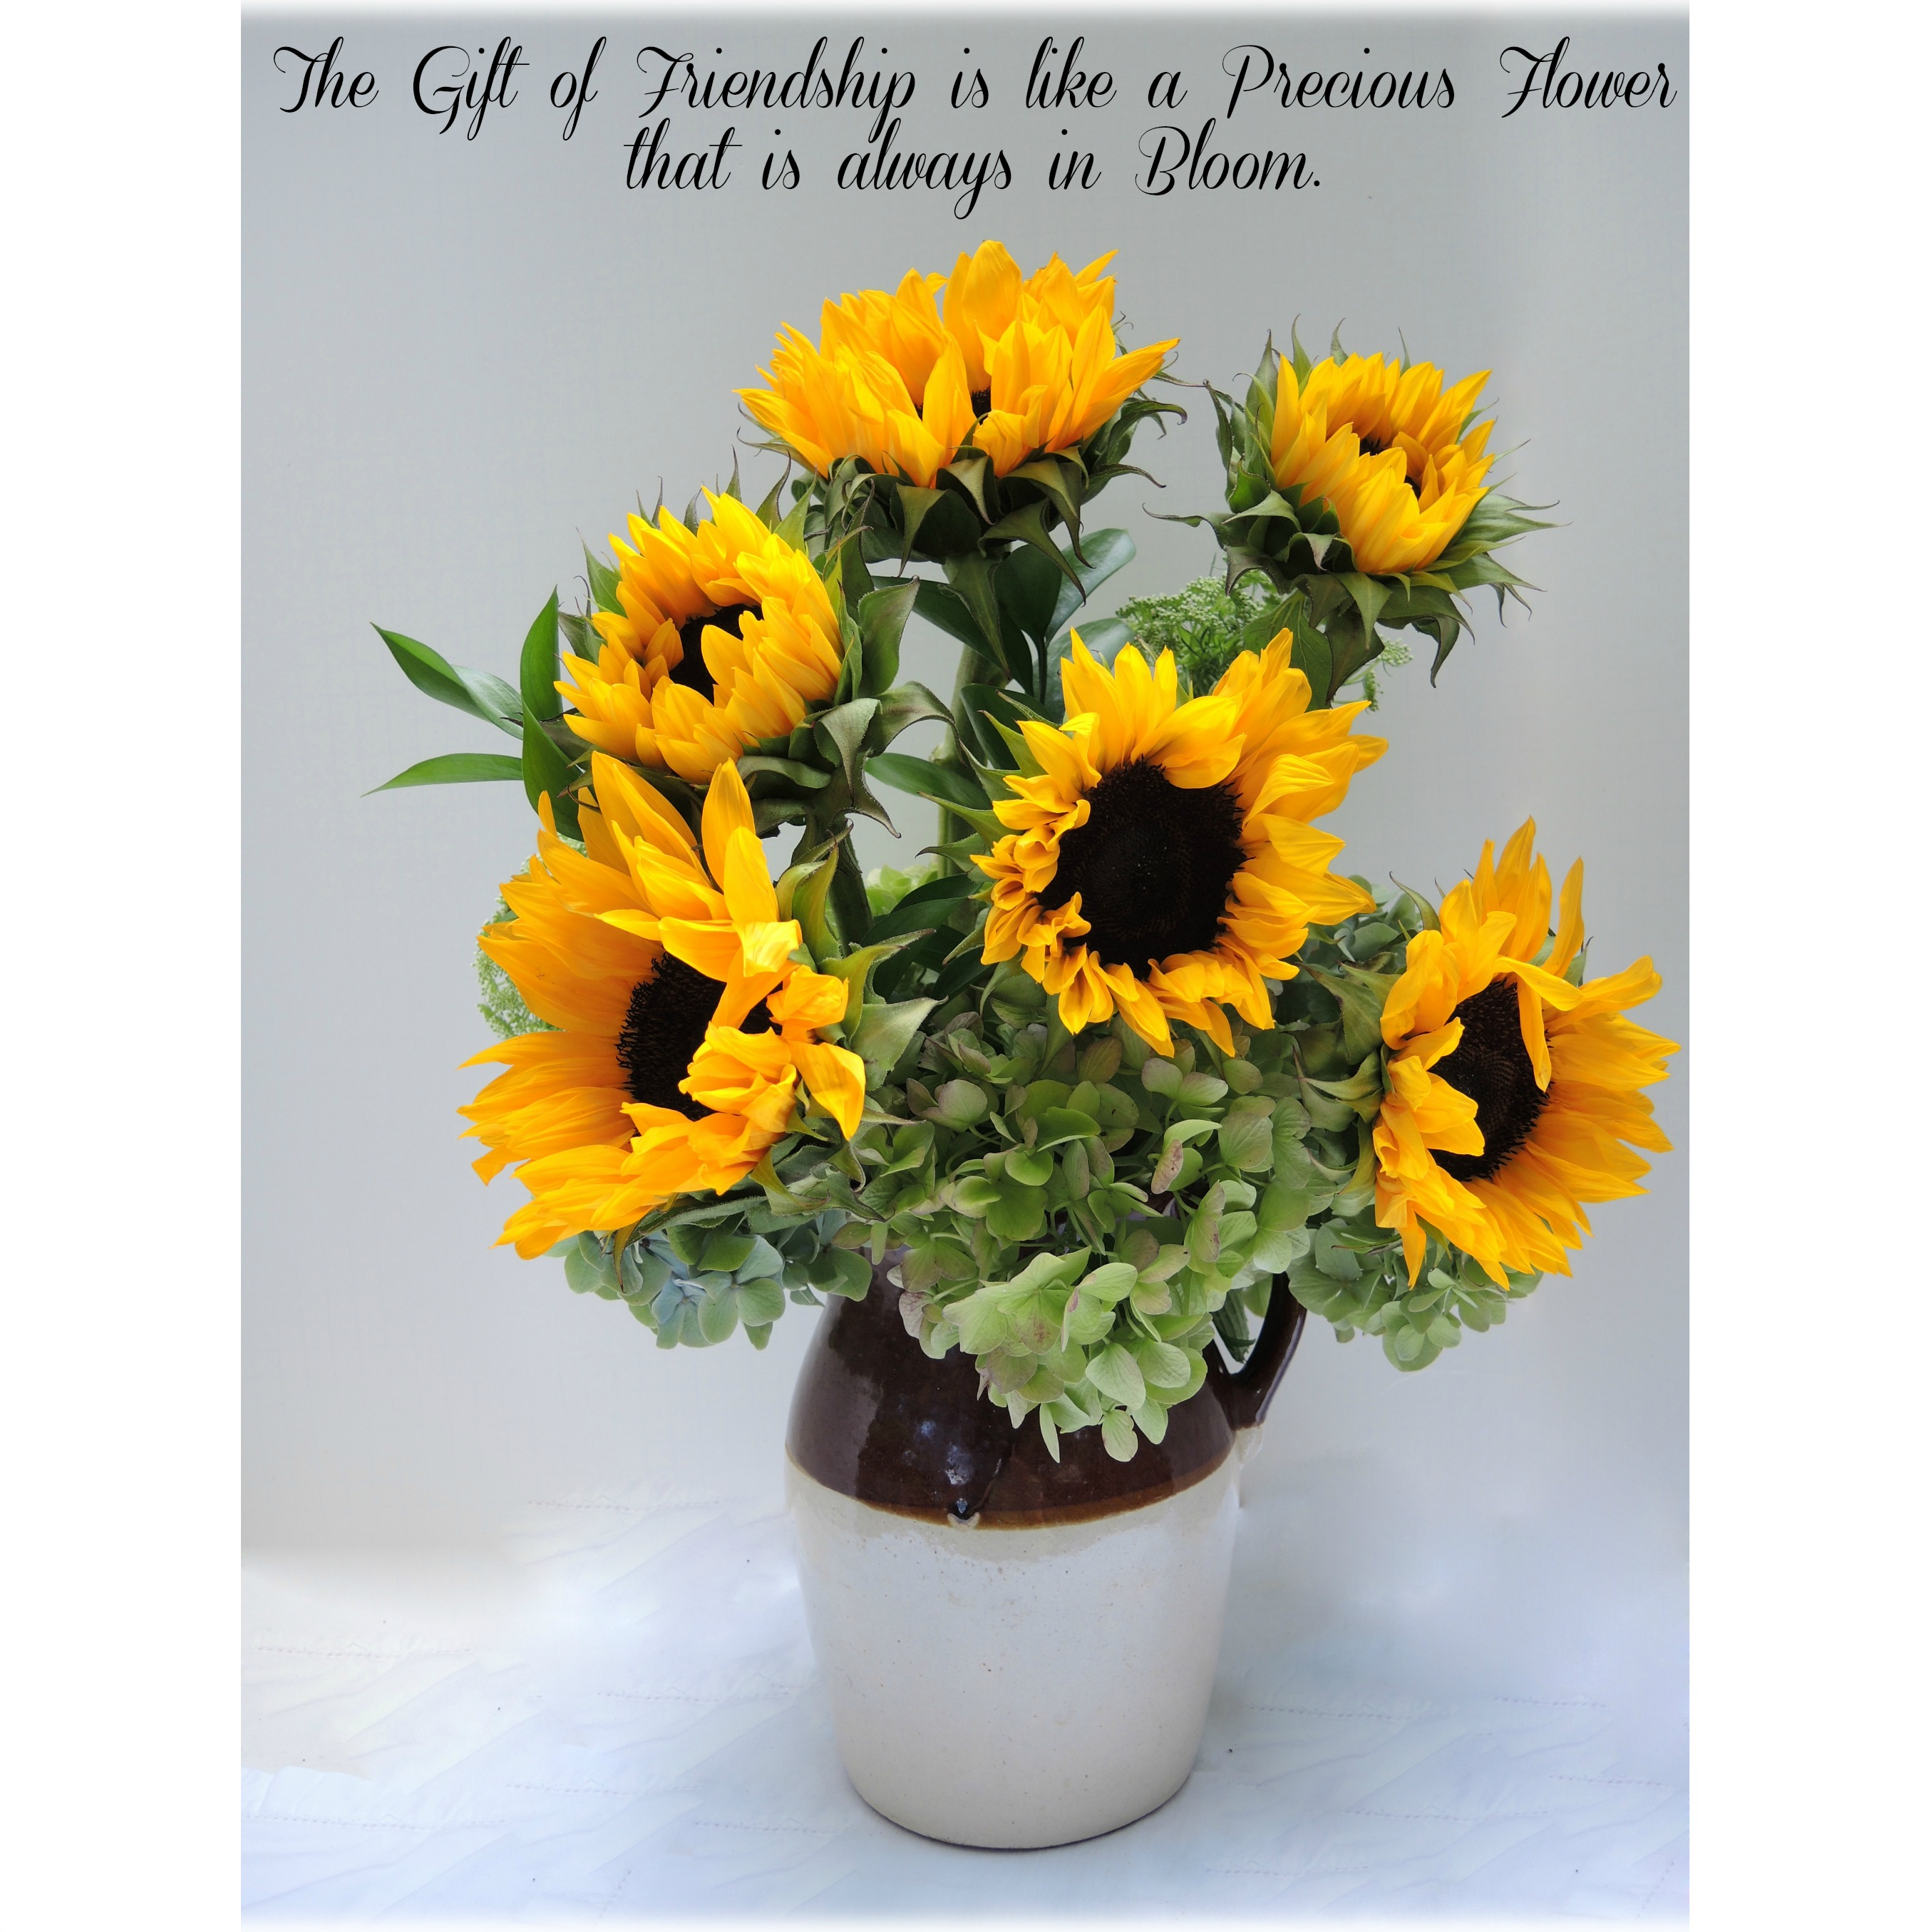 Sunflower & Friendship Quote